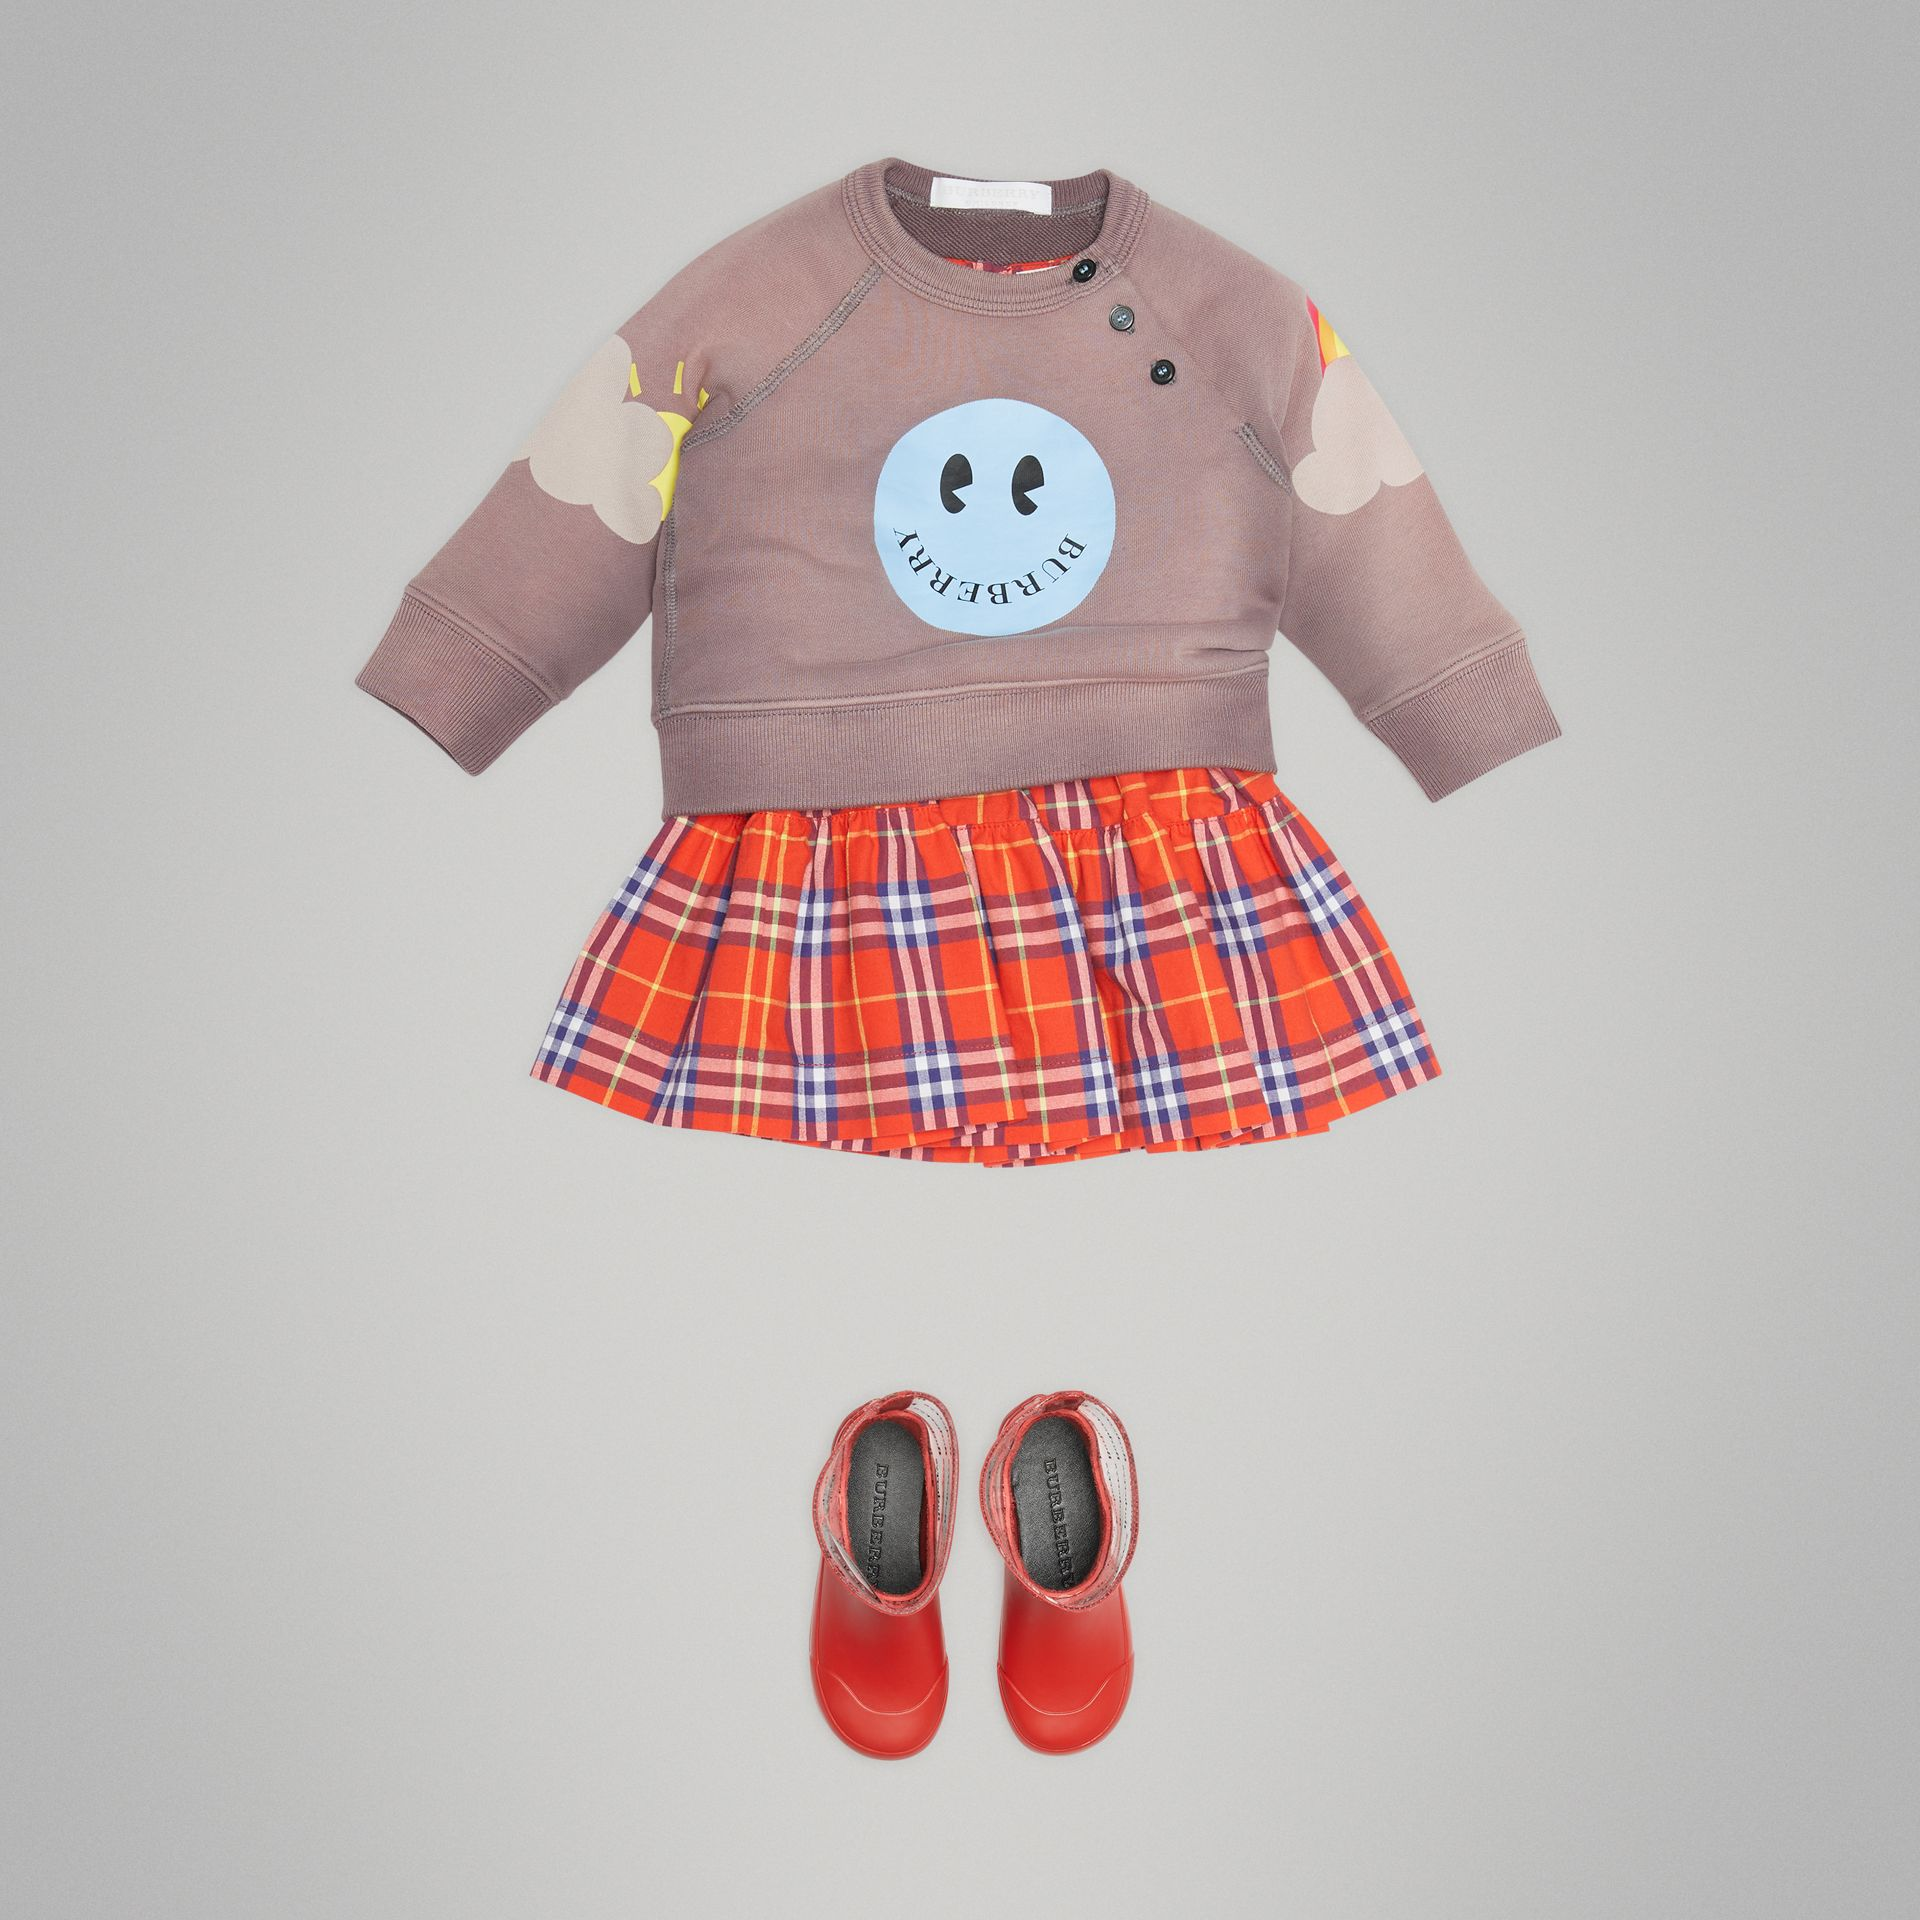 Smiley Face Print Cotton Sweatshirt in Mauve - Children | Burberry United Kingdom - gallery image 2